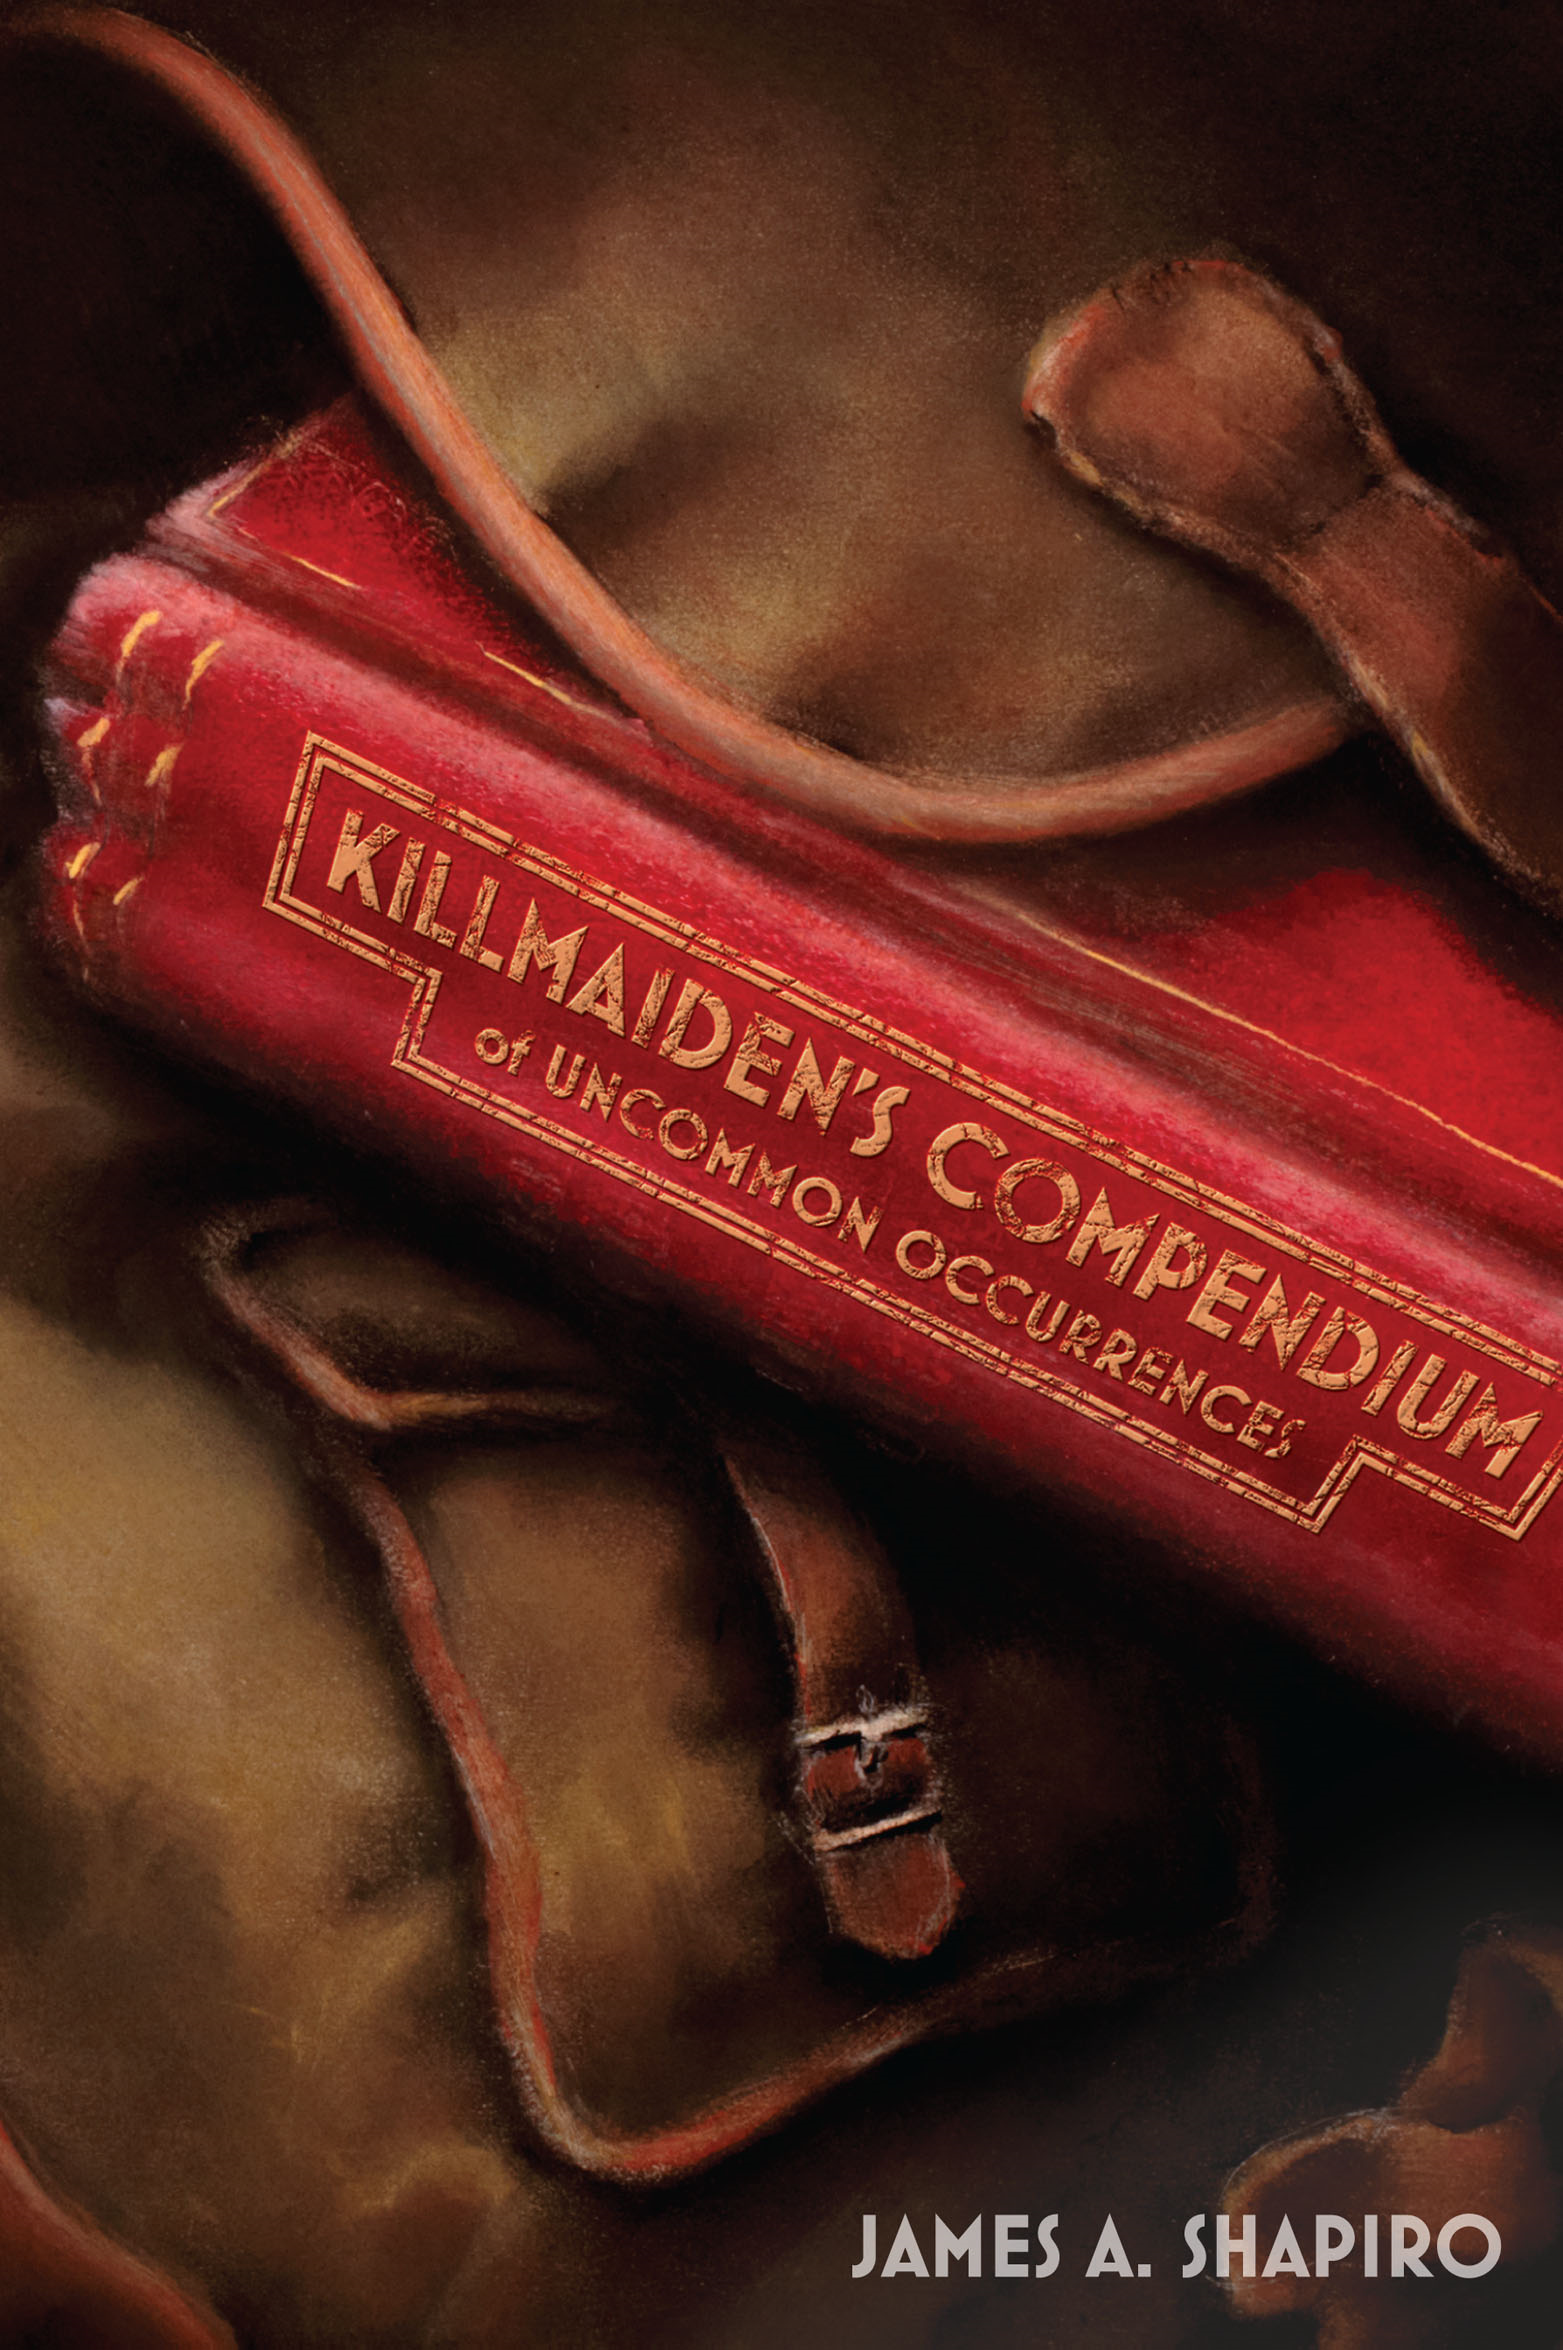 Killmaiden's Compendium of Uncommon Occurrences